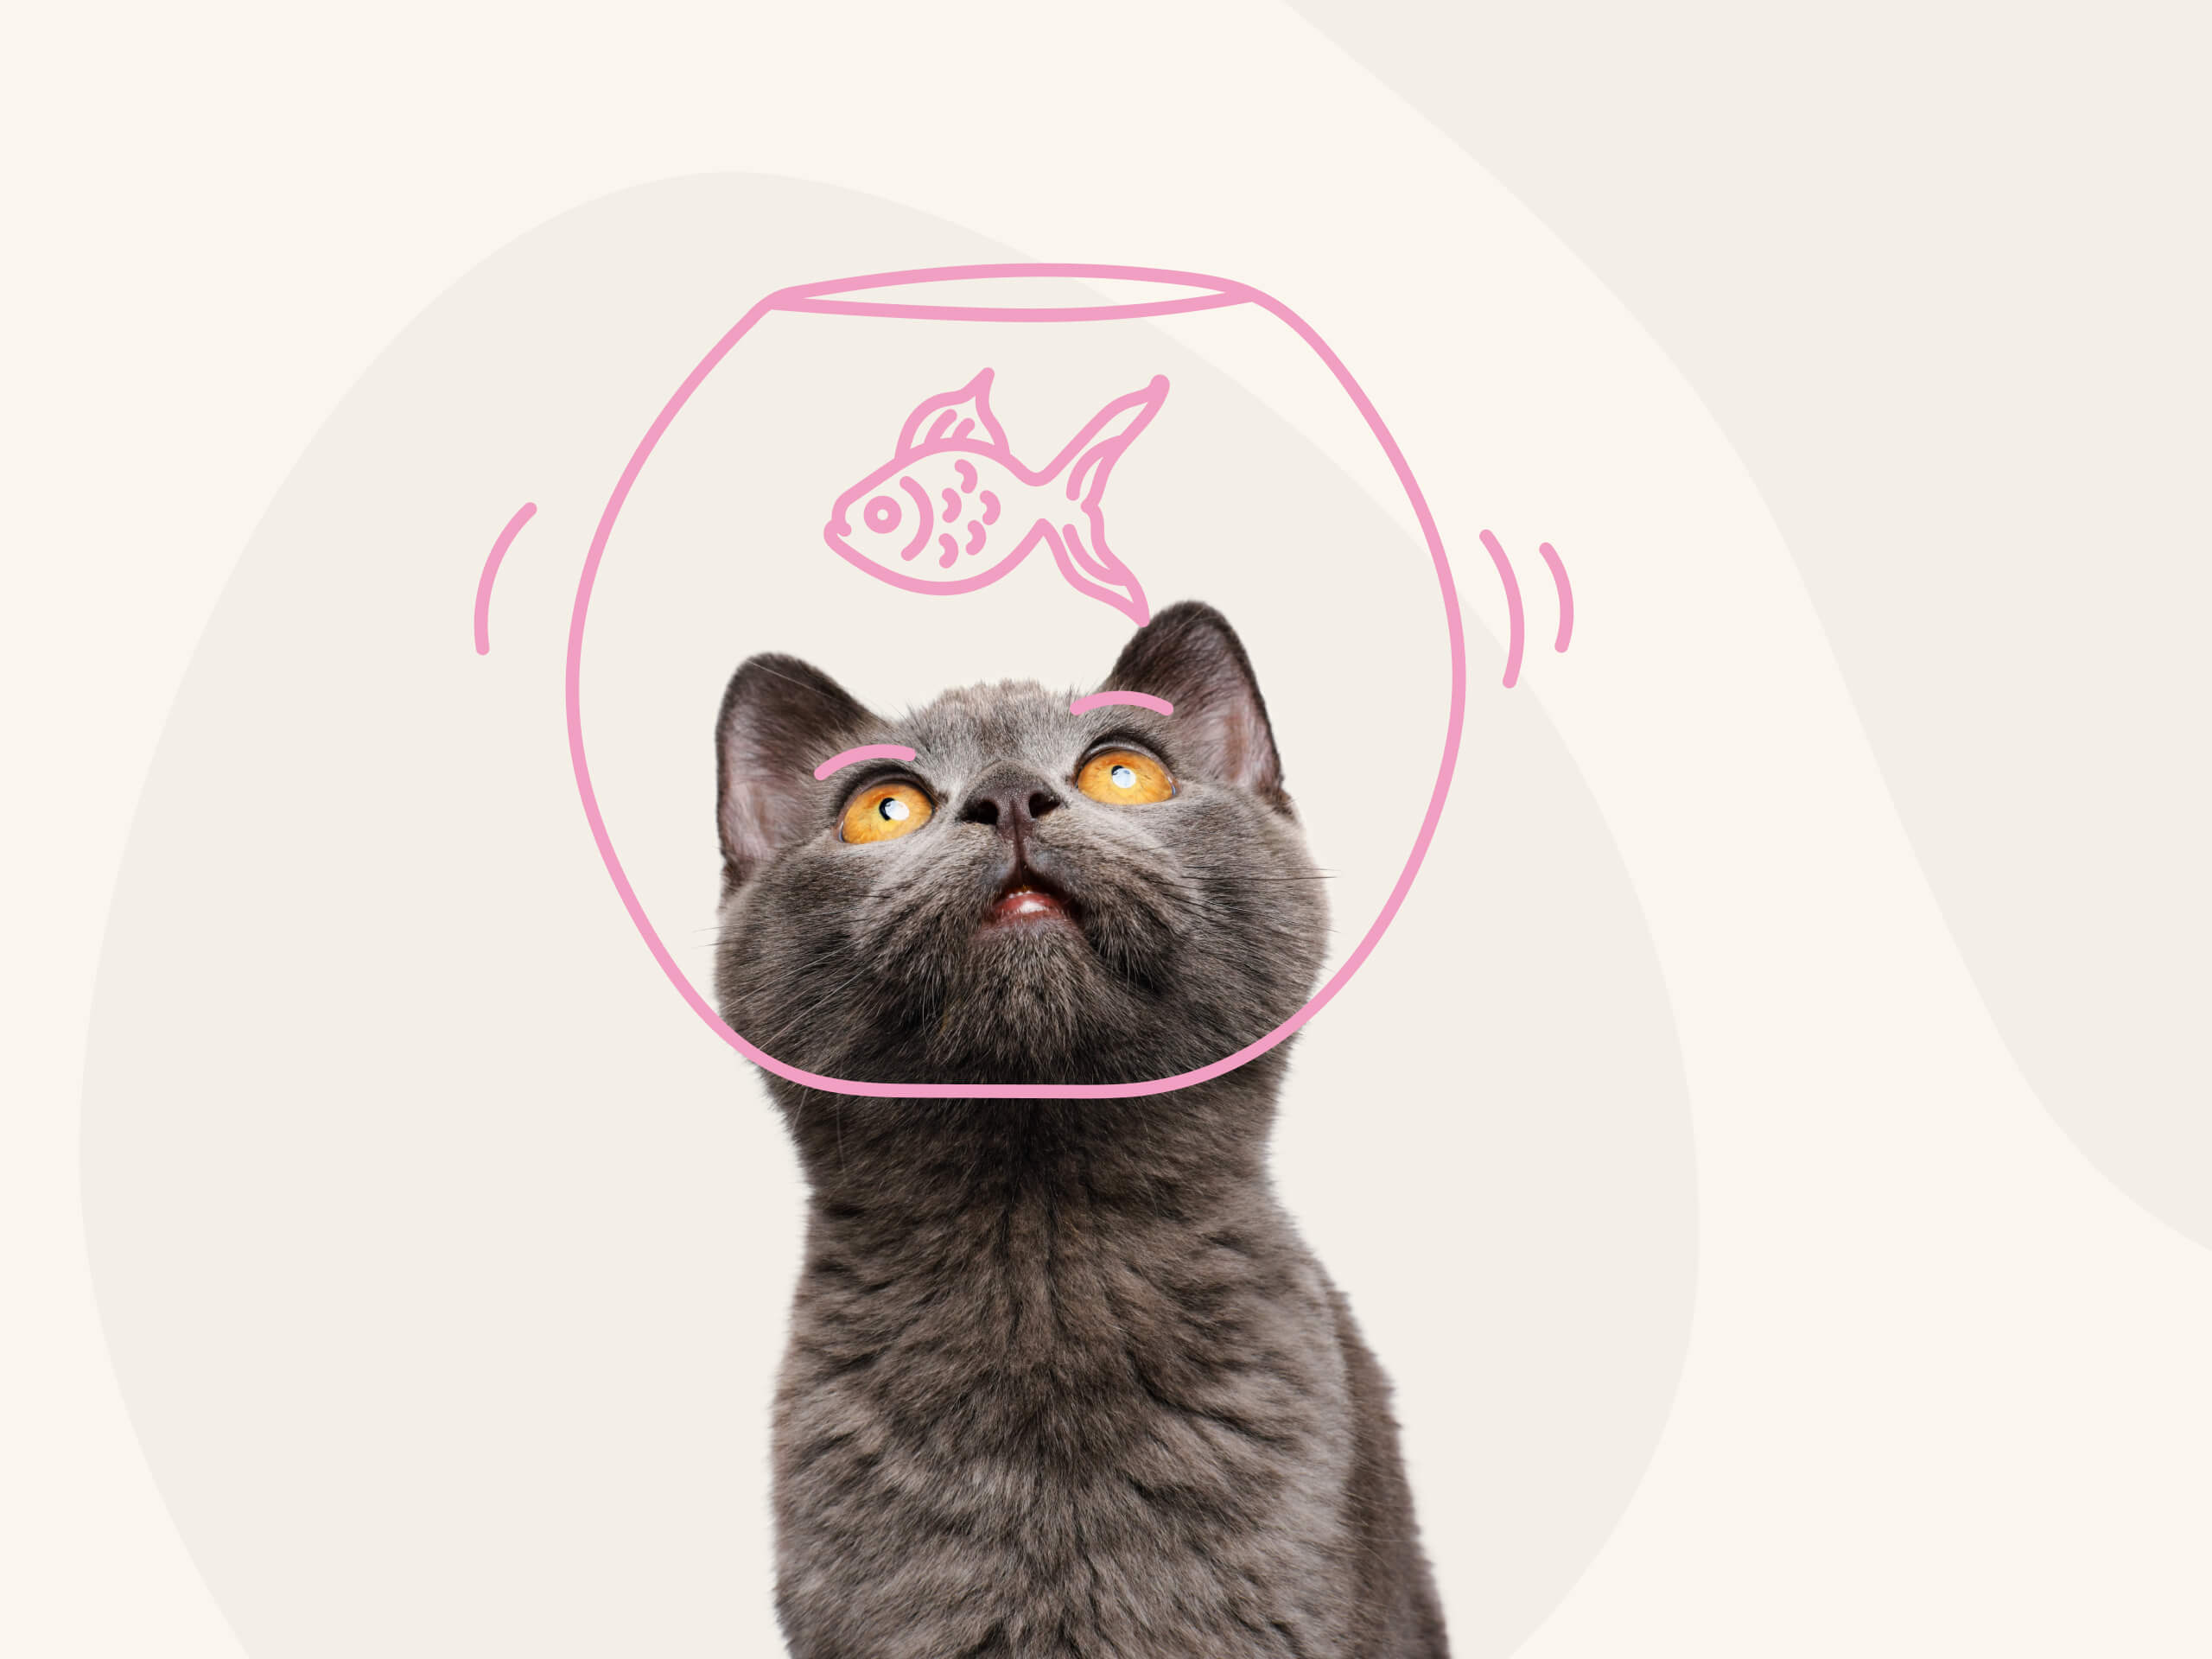 A grey cat with an illustration a fish bowl around their head.